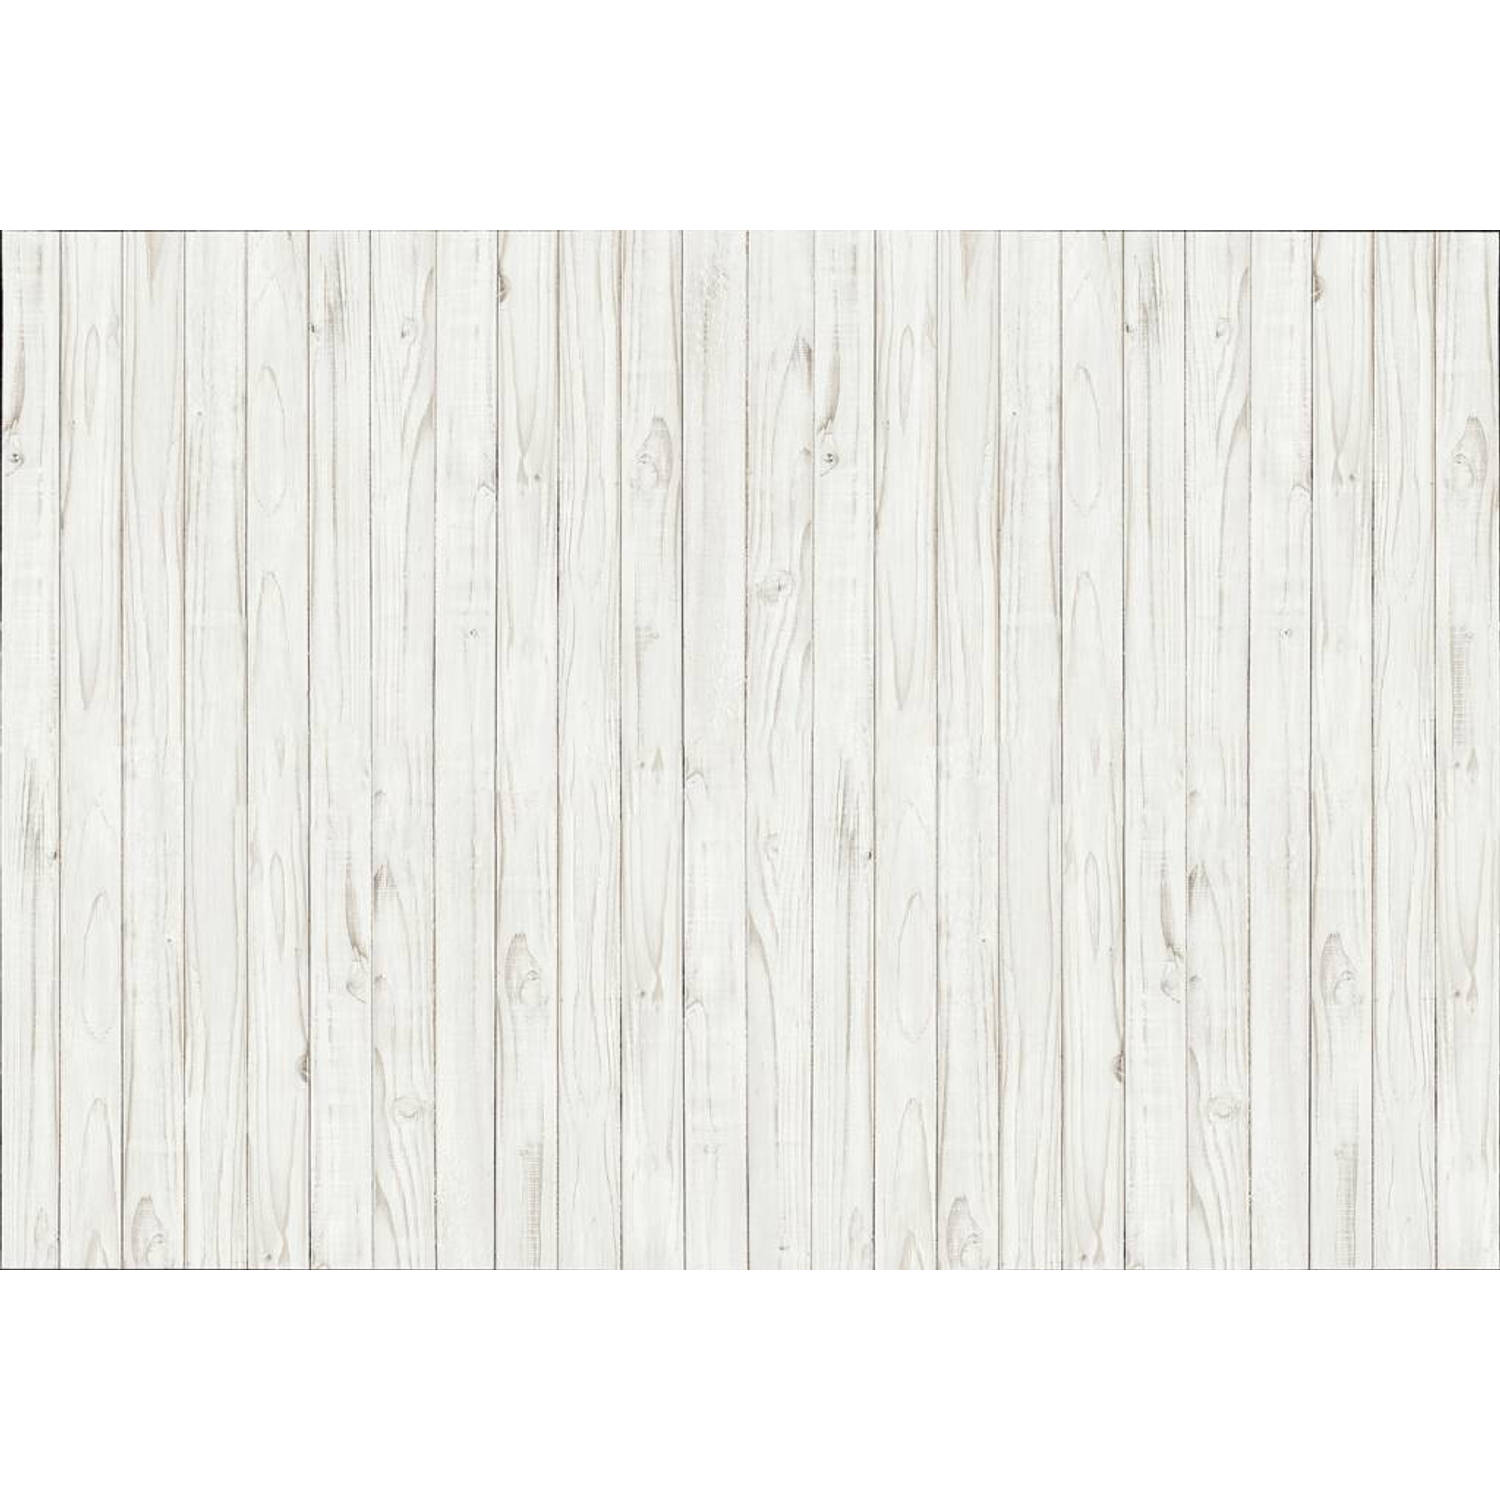 - White Wooden Wall - 366 x 254 cm - Wit